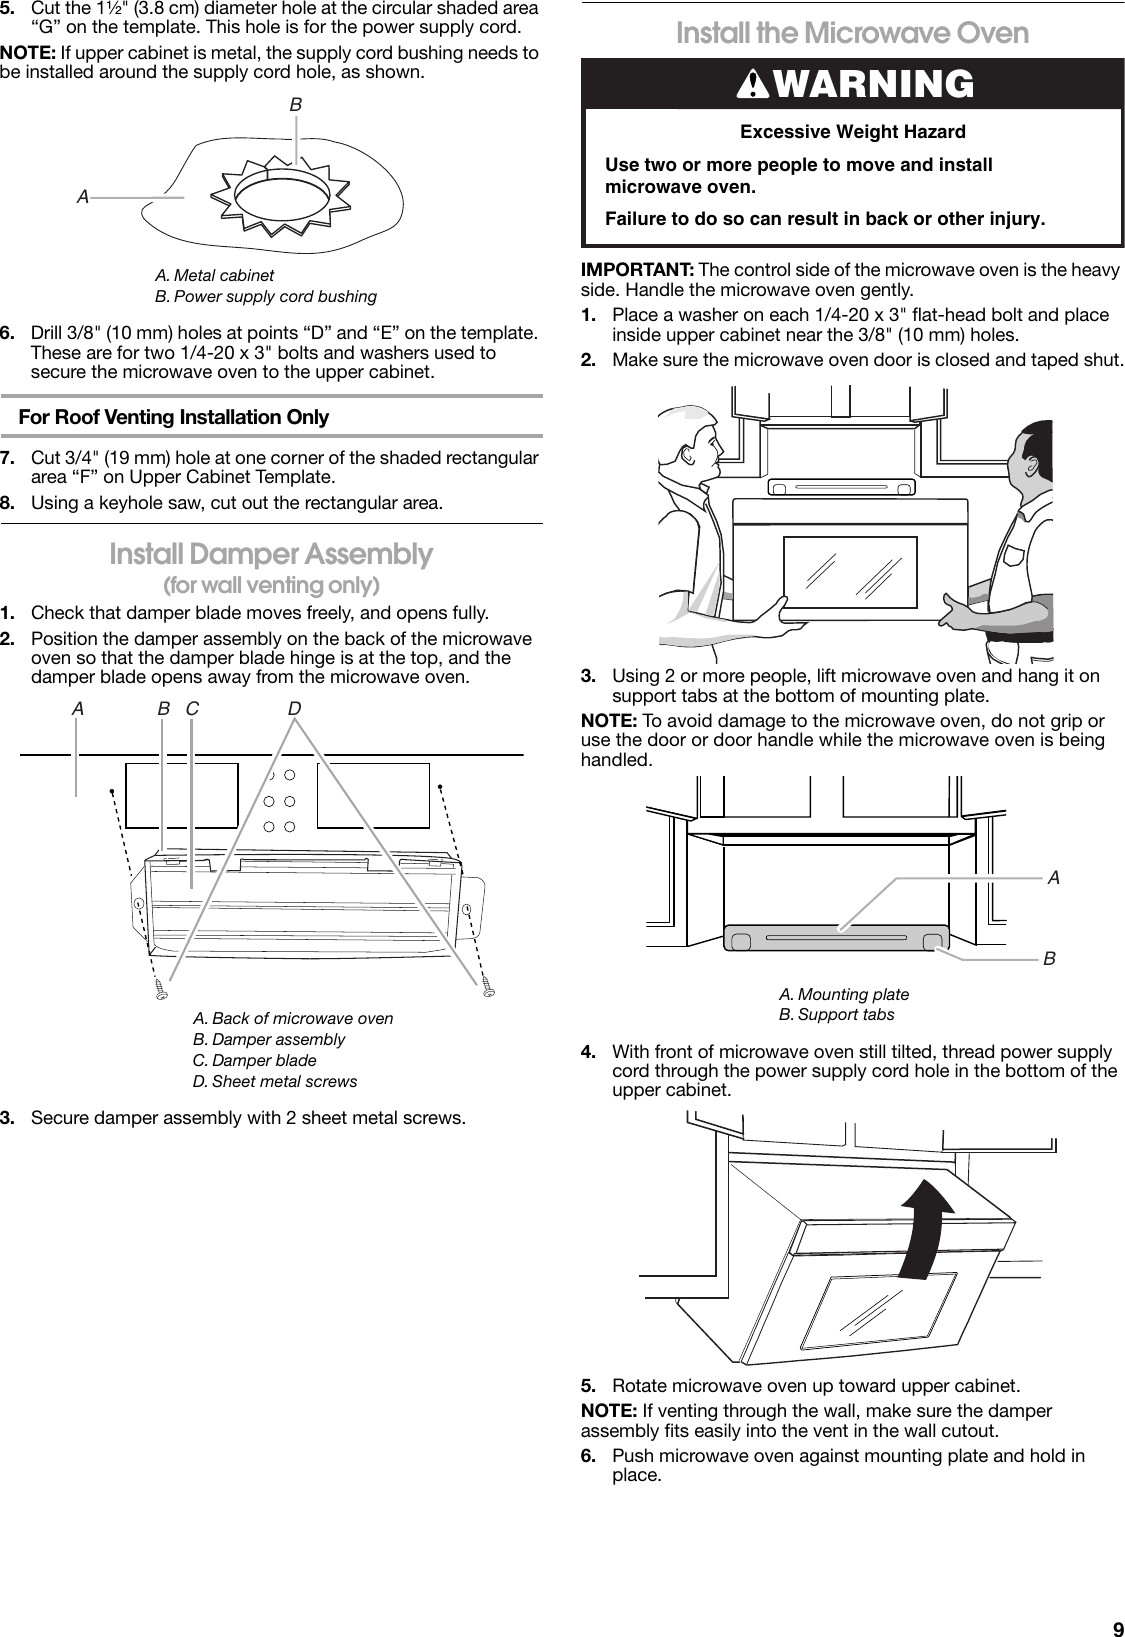 Maytag Mmv1174ds Installation Guide W10724866a Red 1 Ii Microwave Wiring Diagram Page 9 Of 12